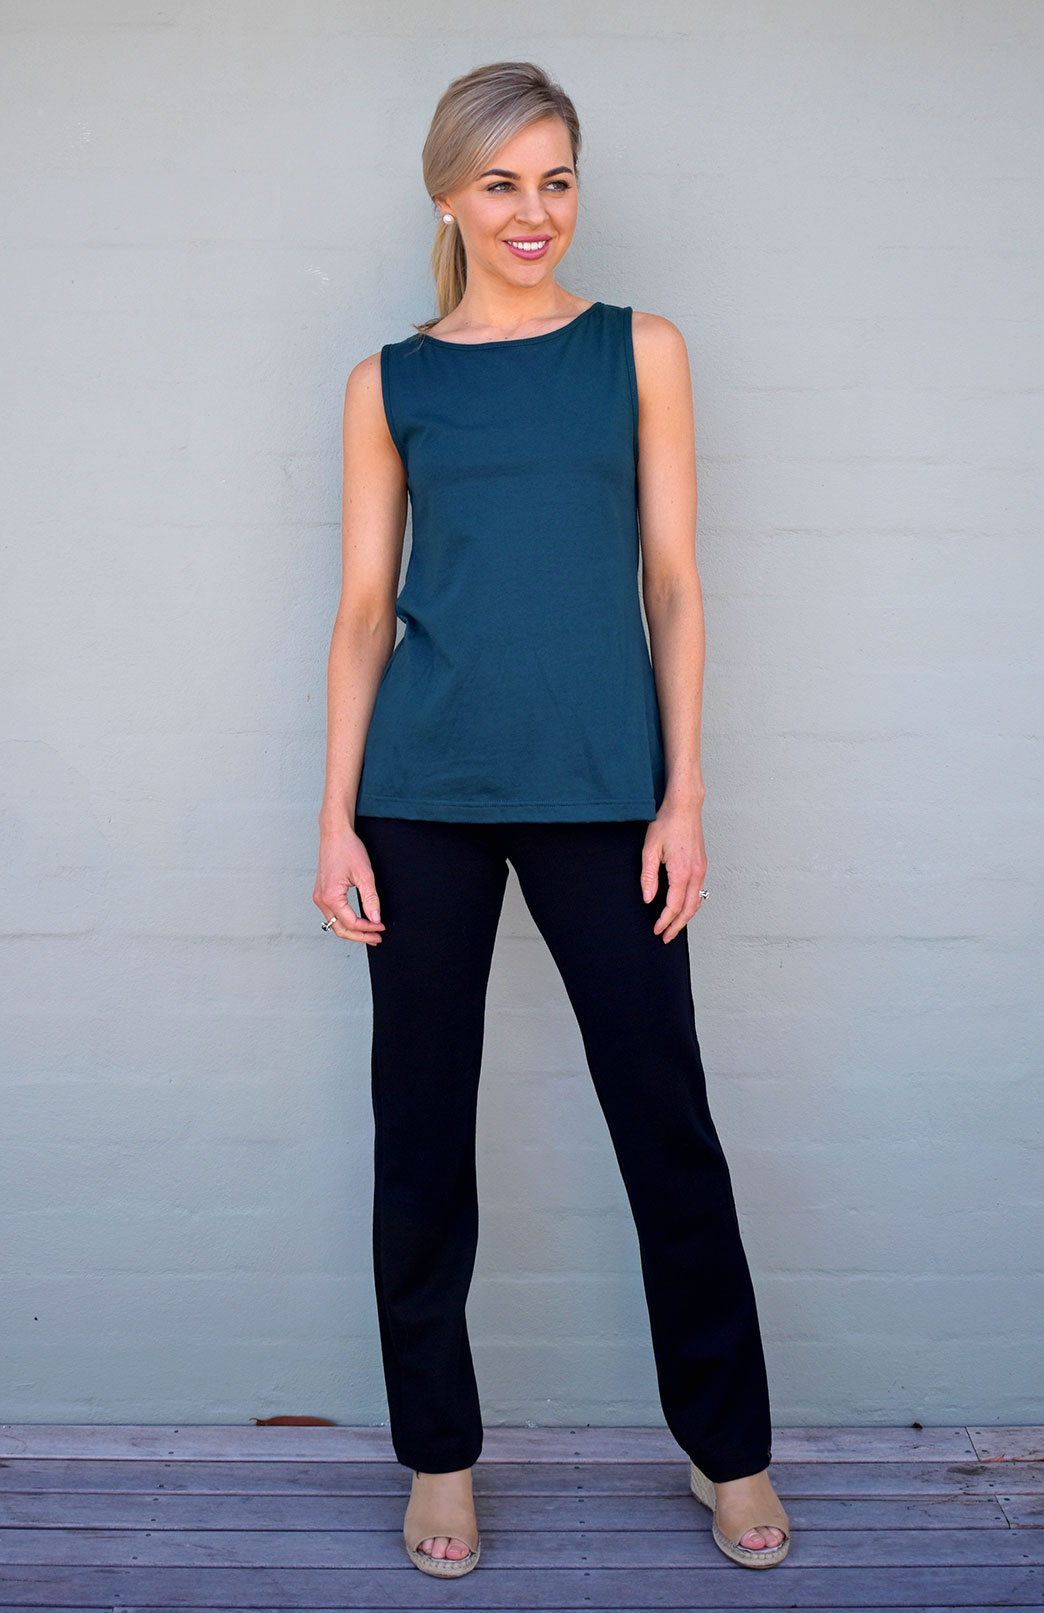 Capri Top (Organic Cotton) - Women's Deep Sea Green Organic Cotton Sleeveless Capri Top with High Neckline and A-Line Shaping - Smitten Merino Tasmania Australia